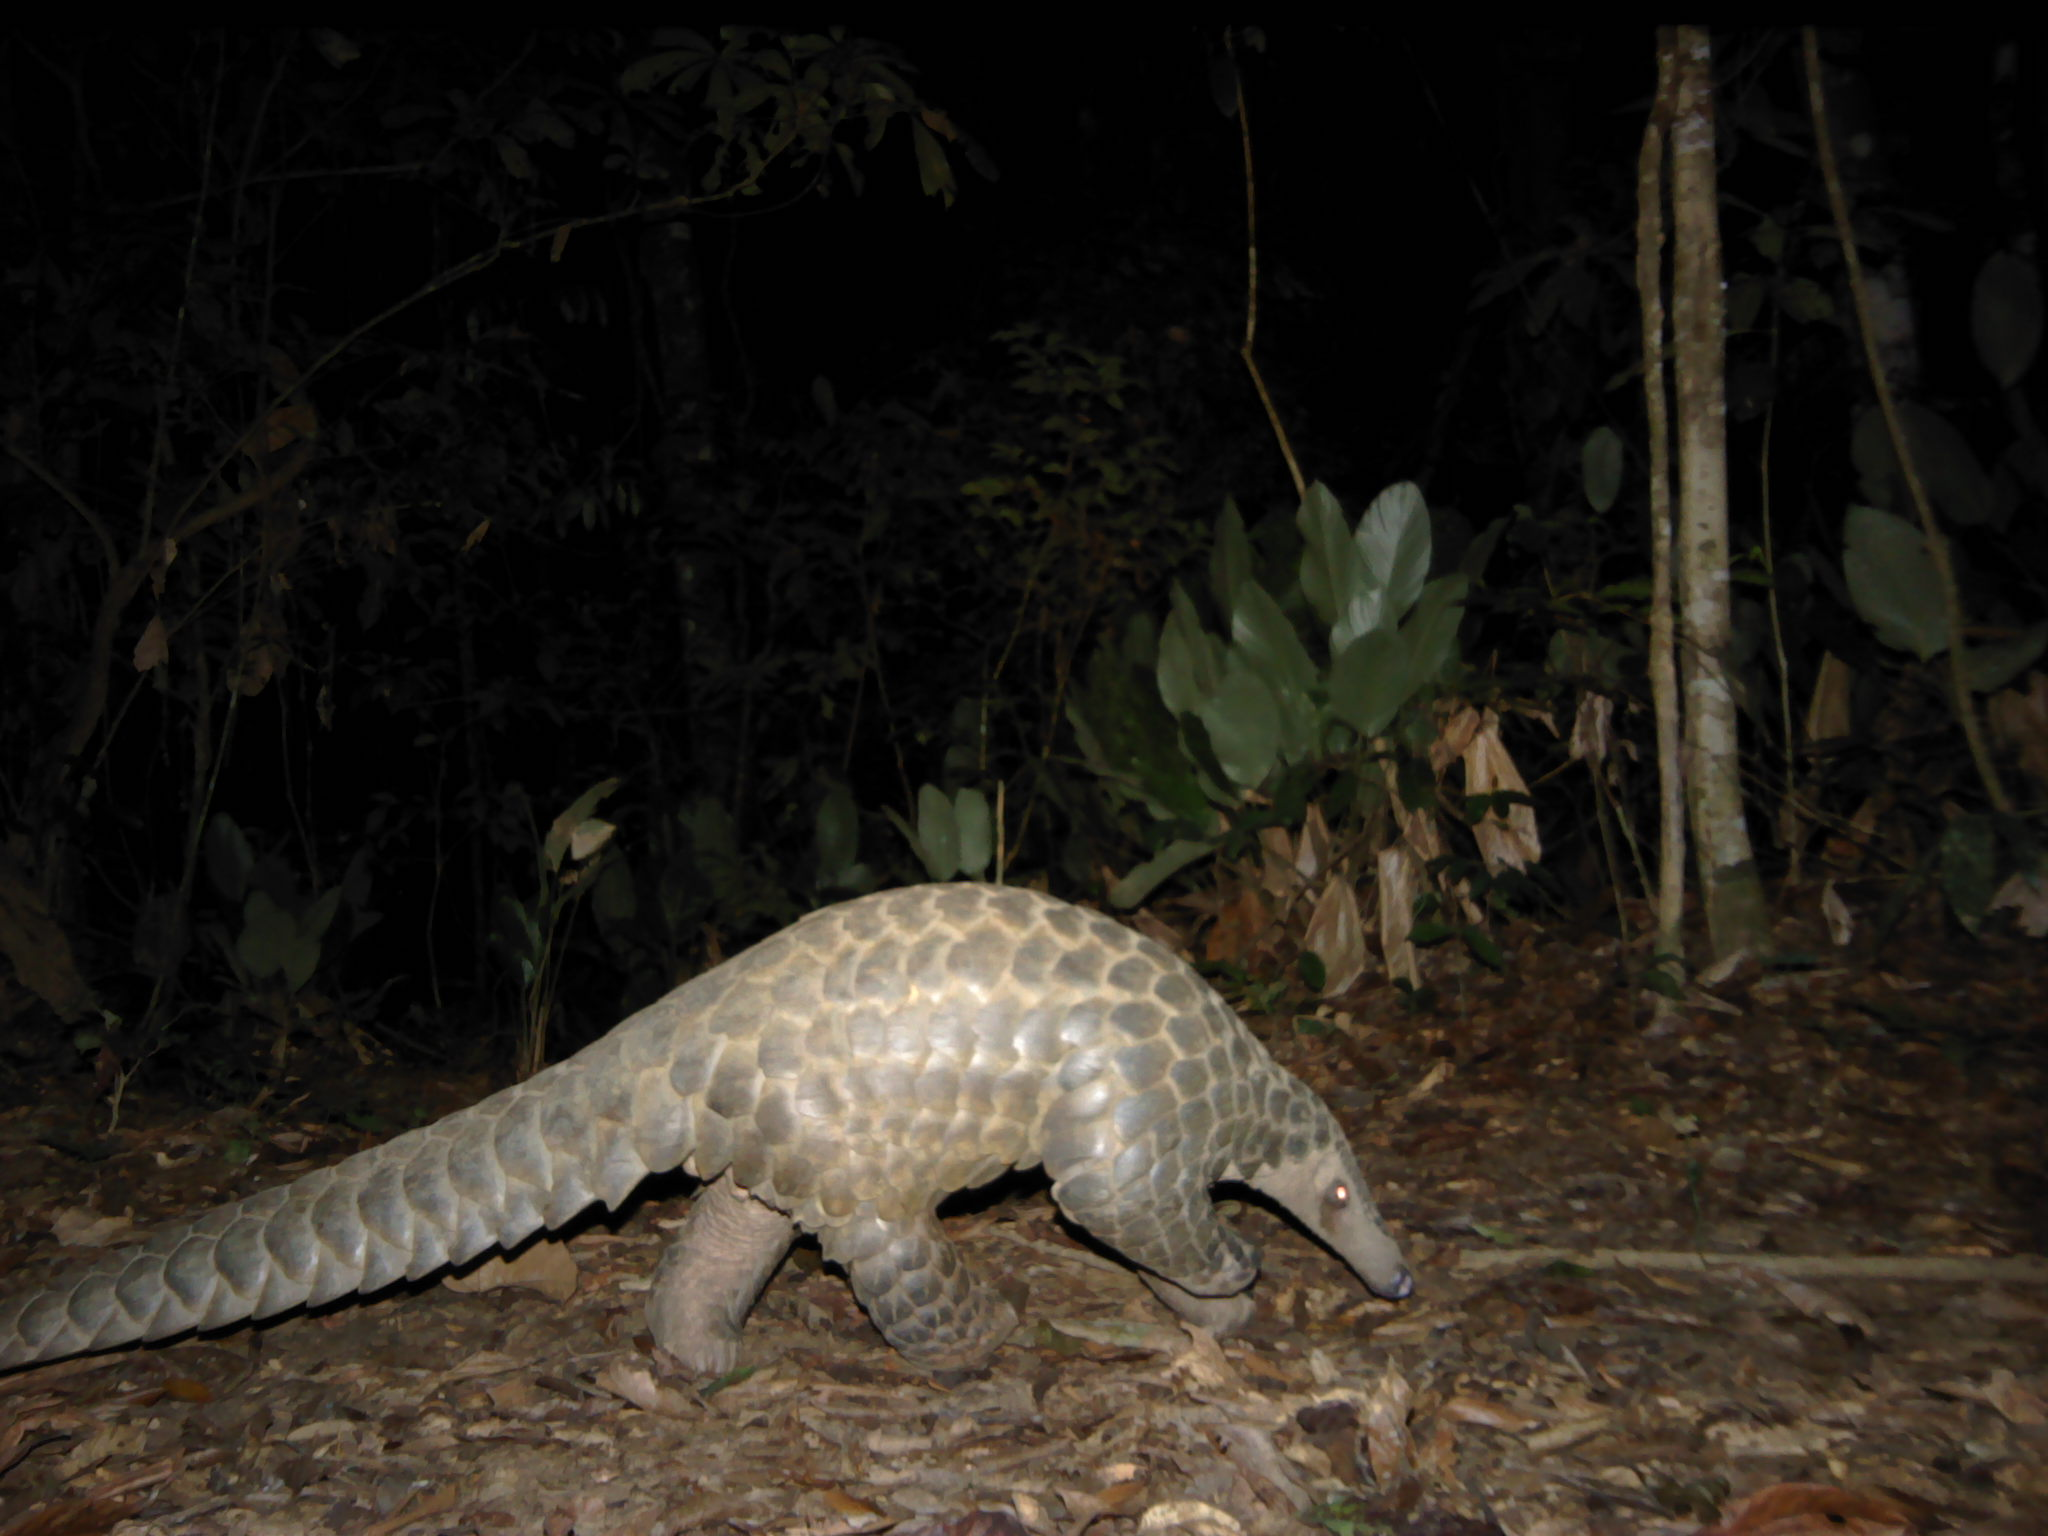 Giant Pangolin are primarily nocturnal animals and feed predominantly on ants and termites. Their existence is under threat.